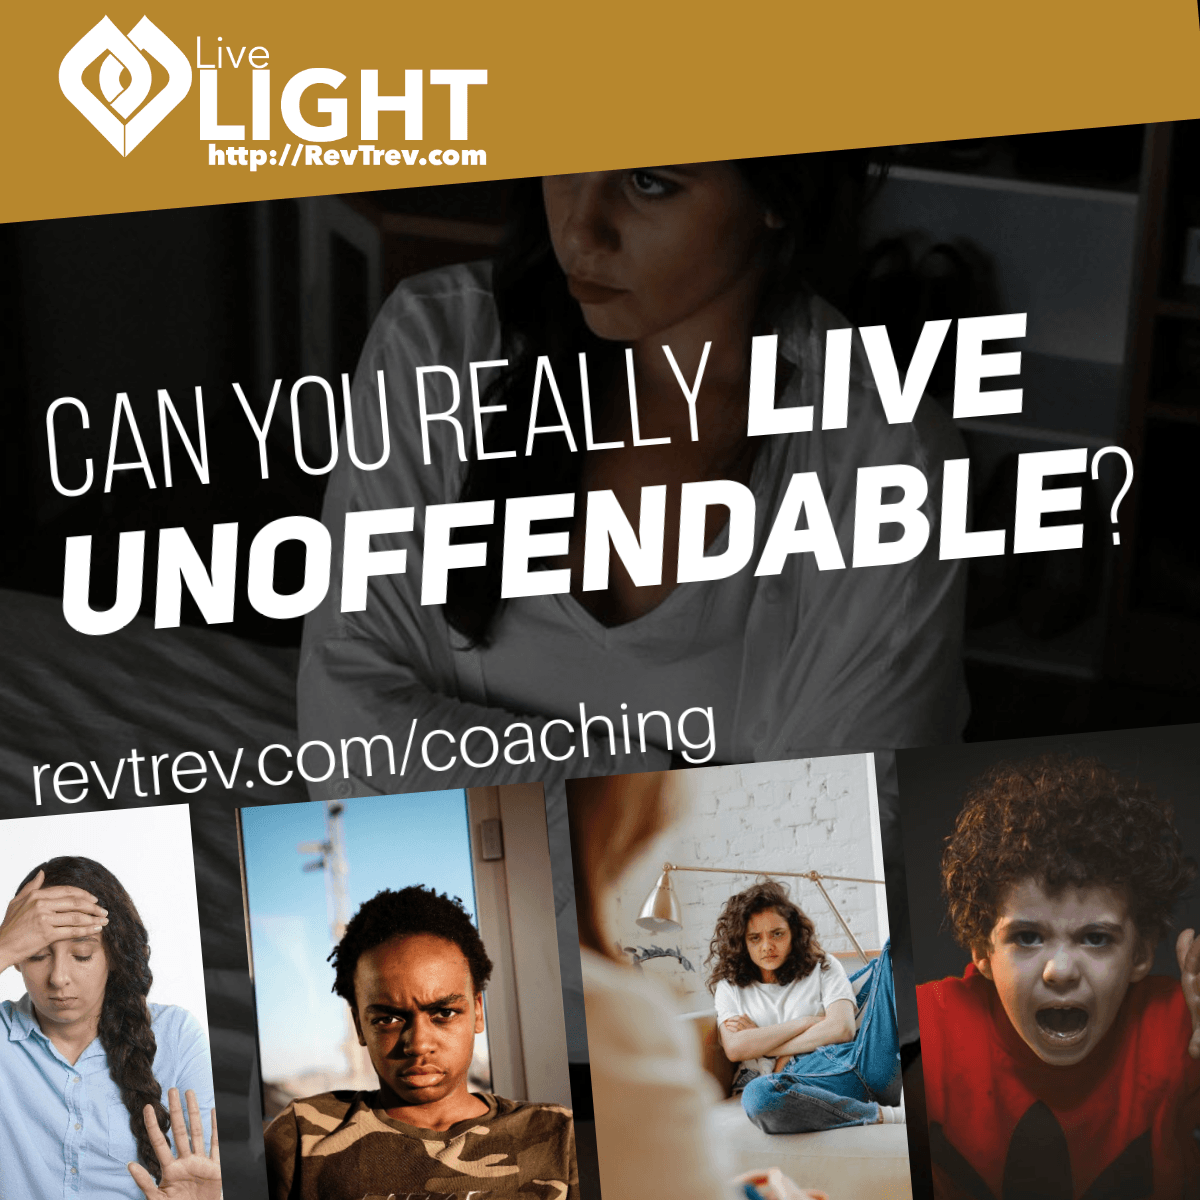 Can you really live unoffendable? via @trevorlund